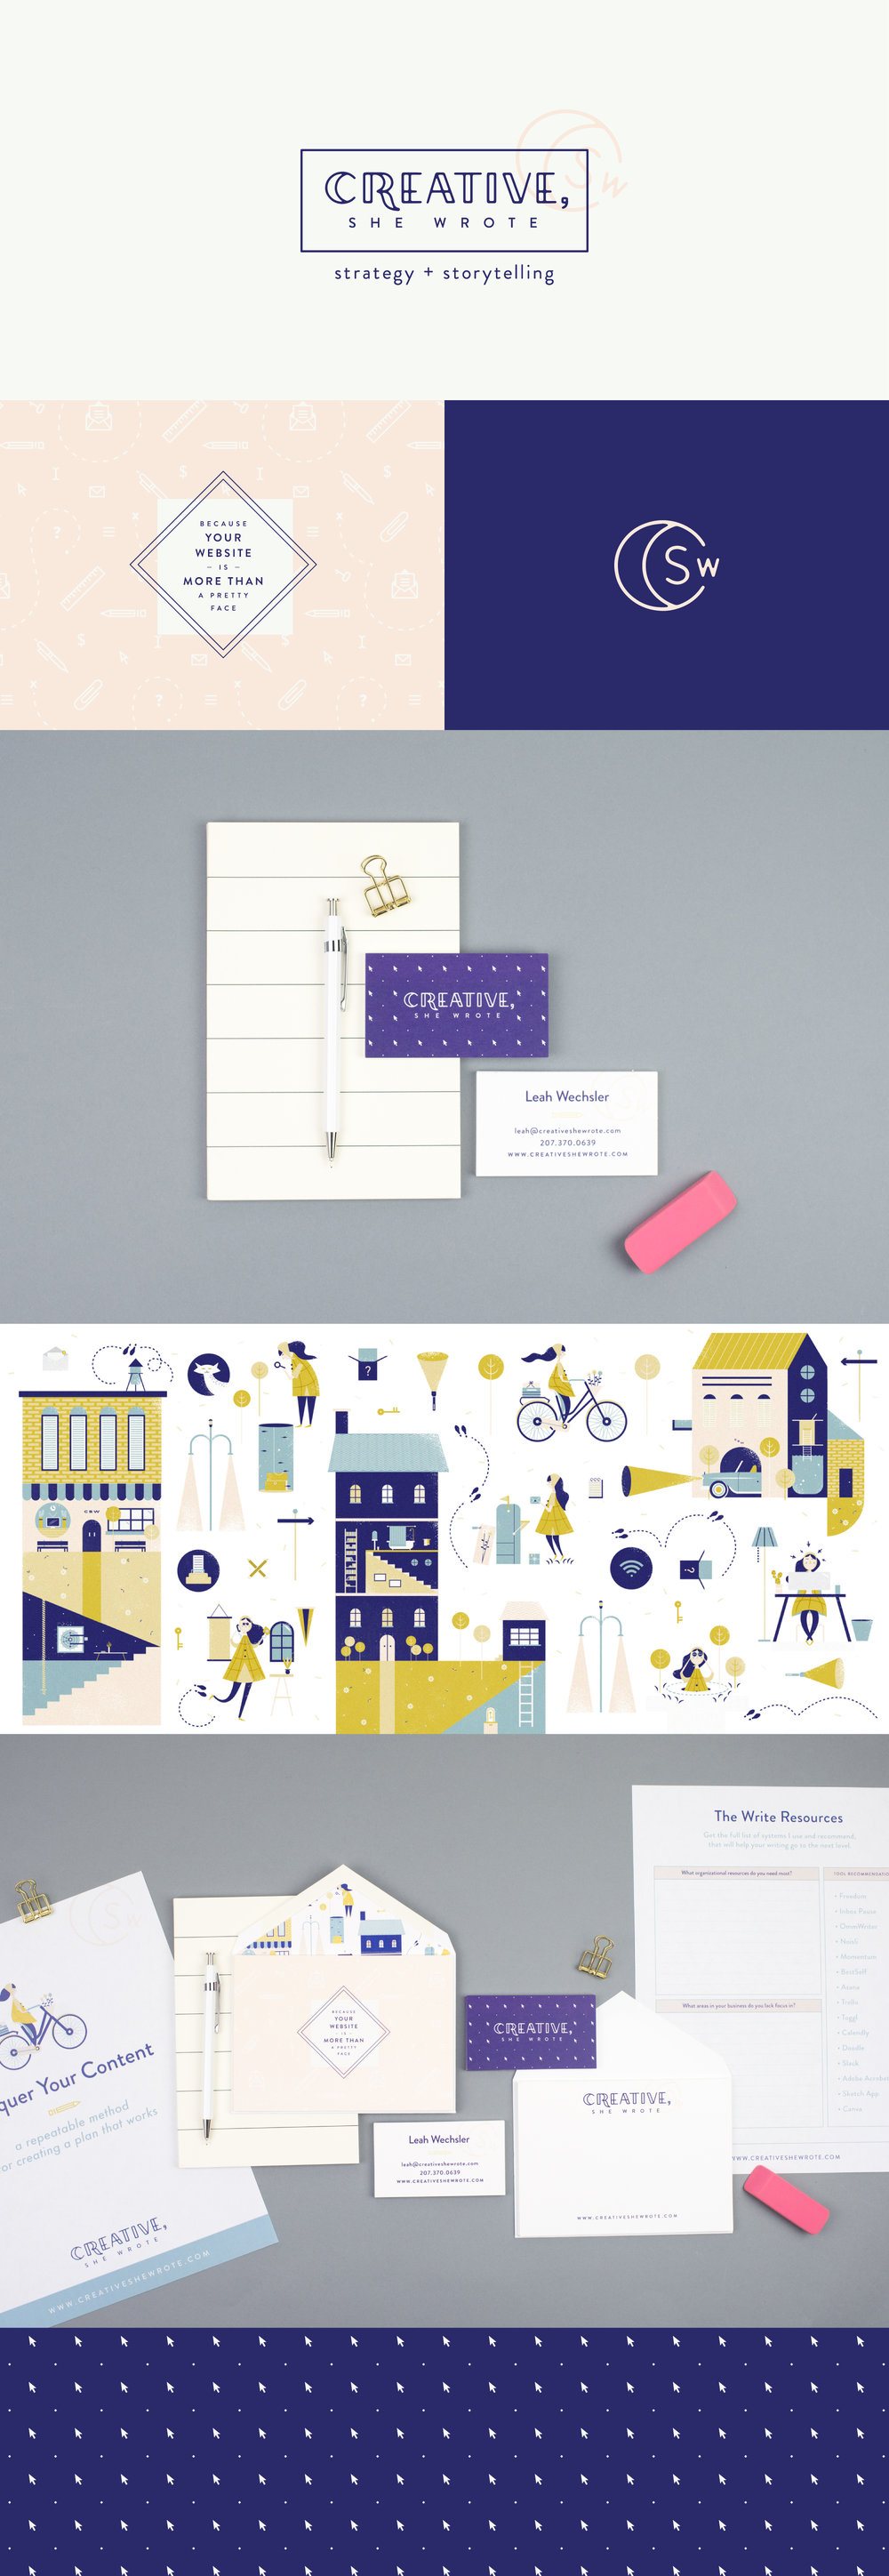 Creative, She Wrote brand identity | Spruce Rd. | logo design, illustration, content marketing, worksheet design, branding, online brand